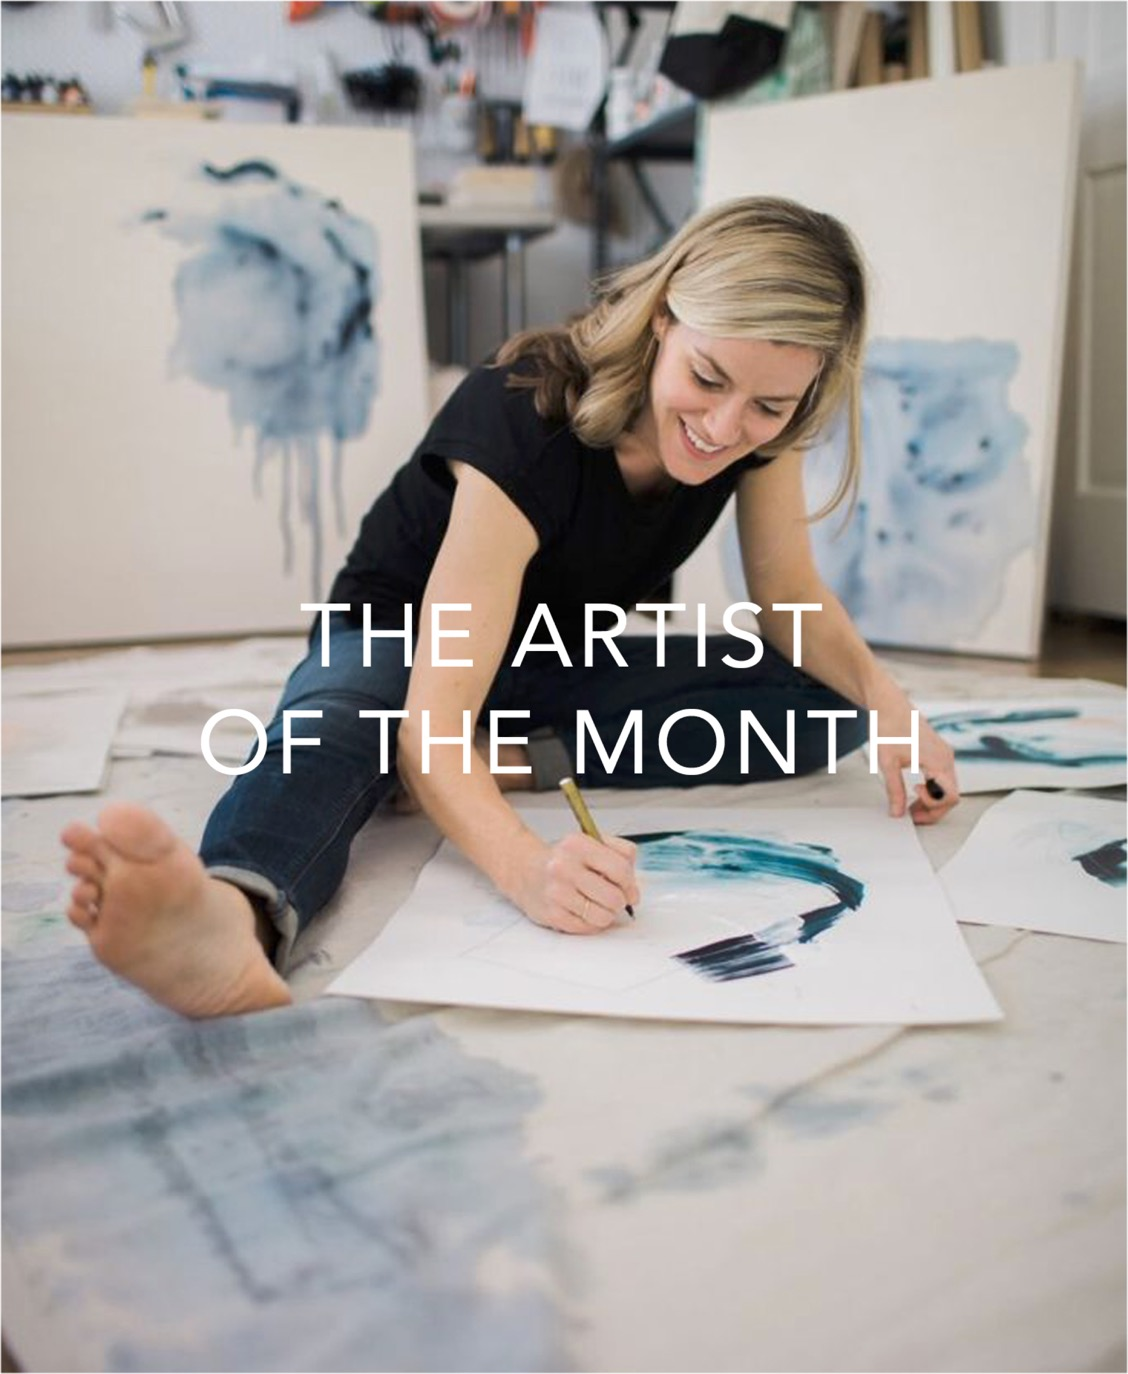 The artist of the month